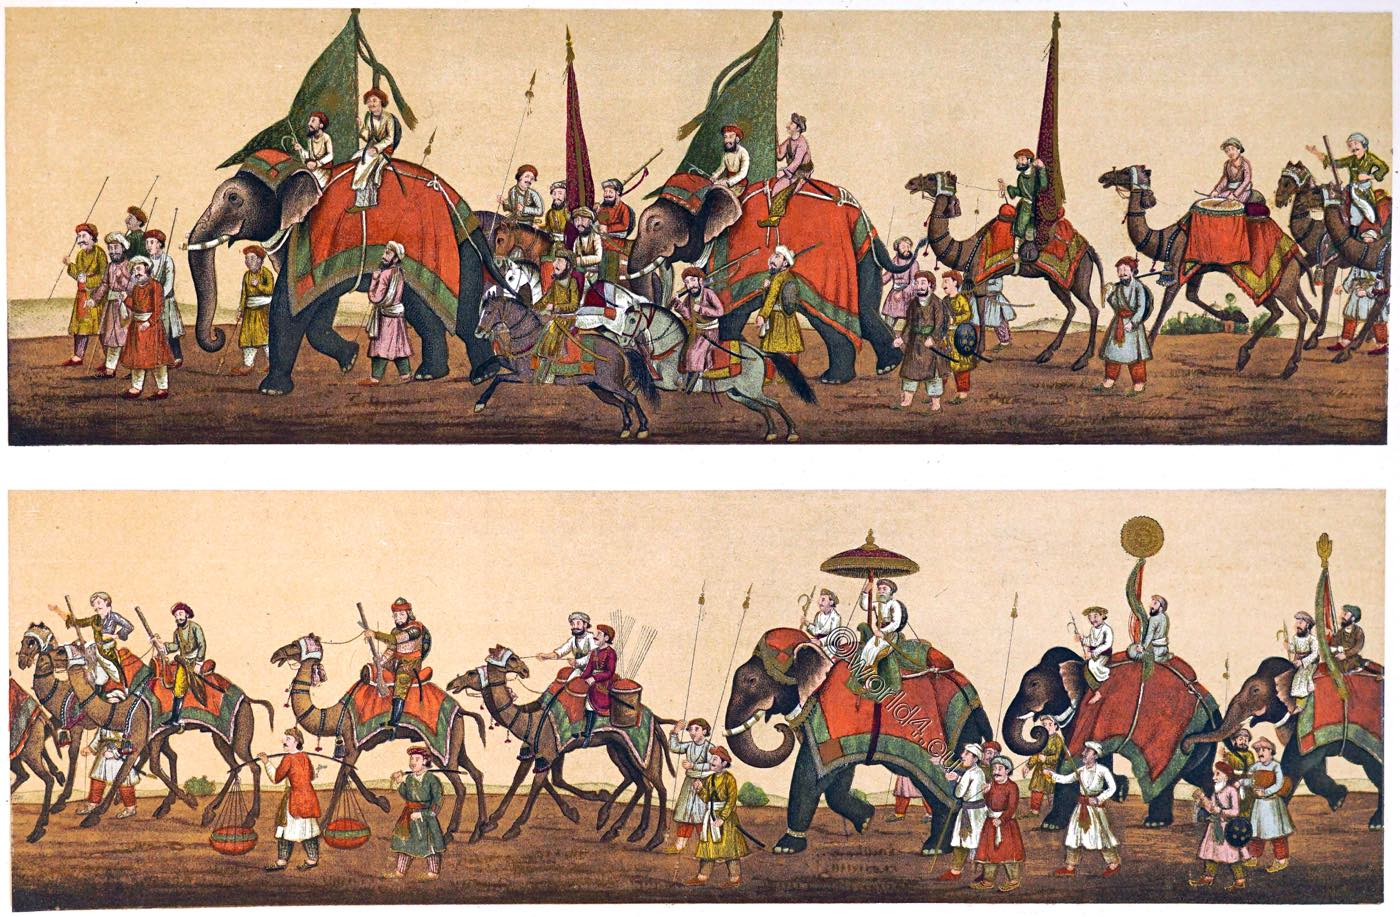 India, Mughal Empire, Procession, court,